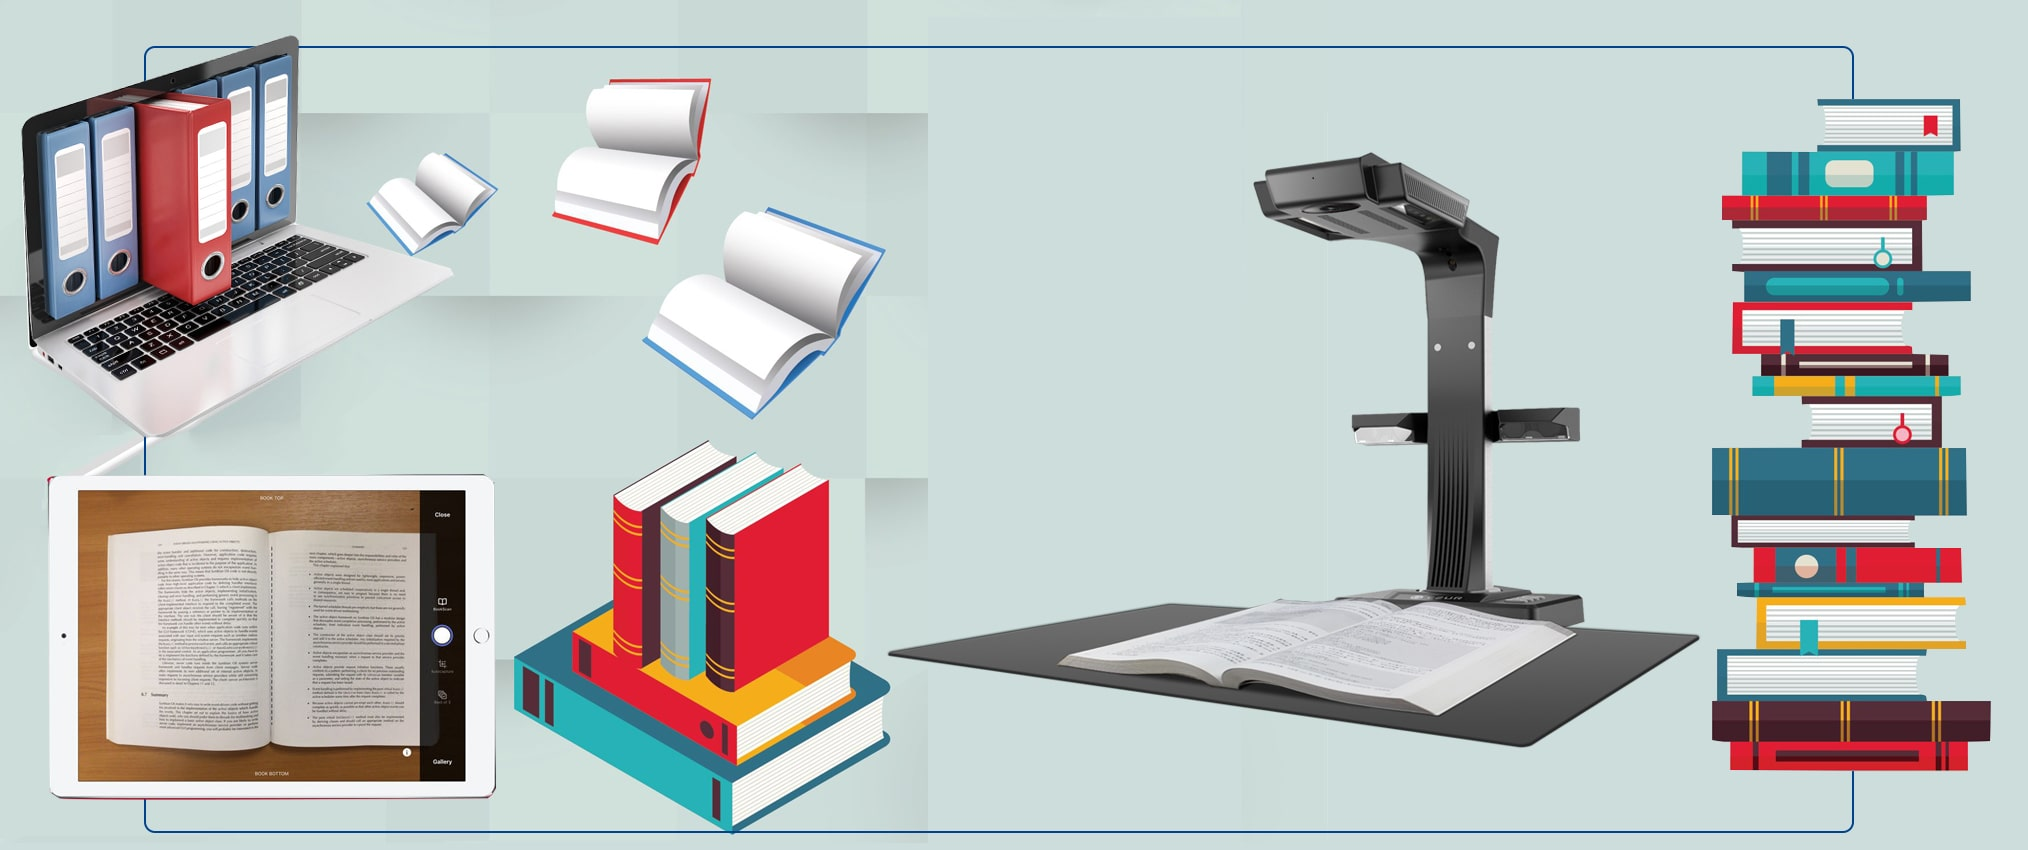 convert a book to pdf with book scanning services